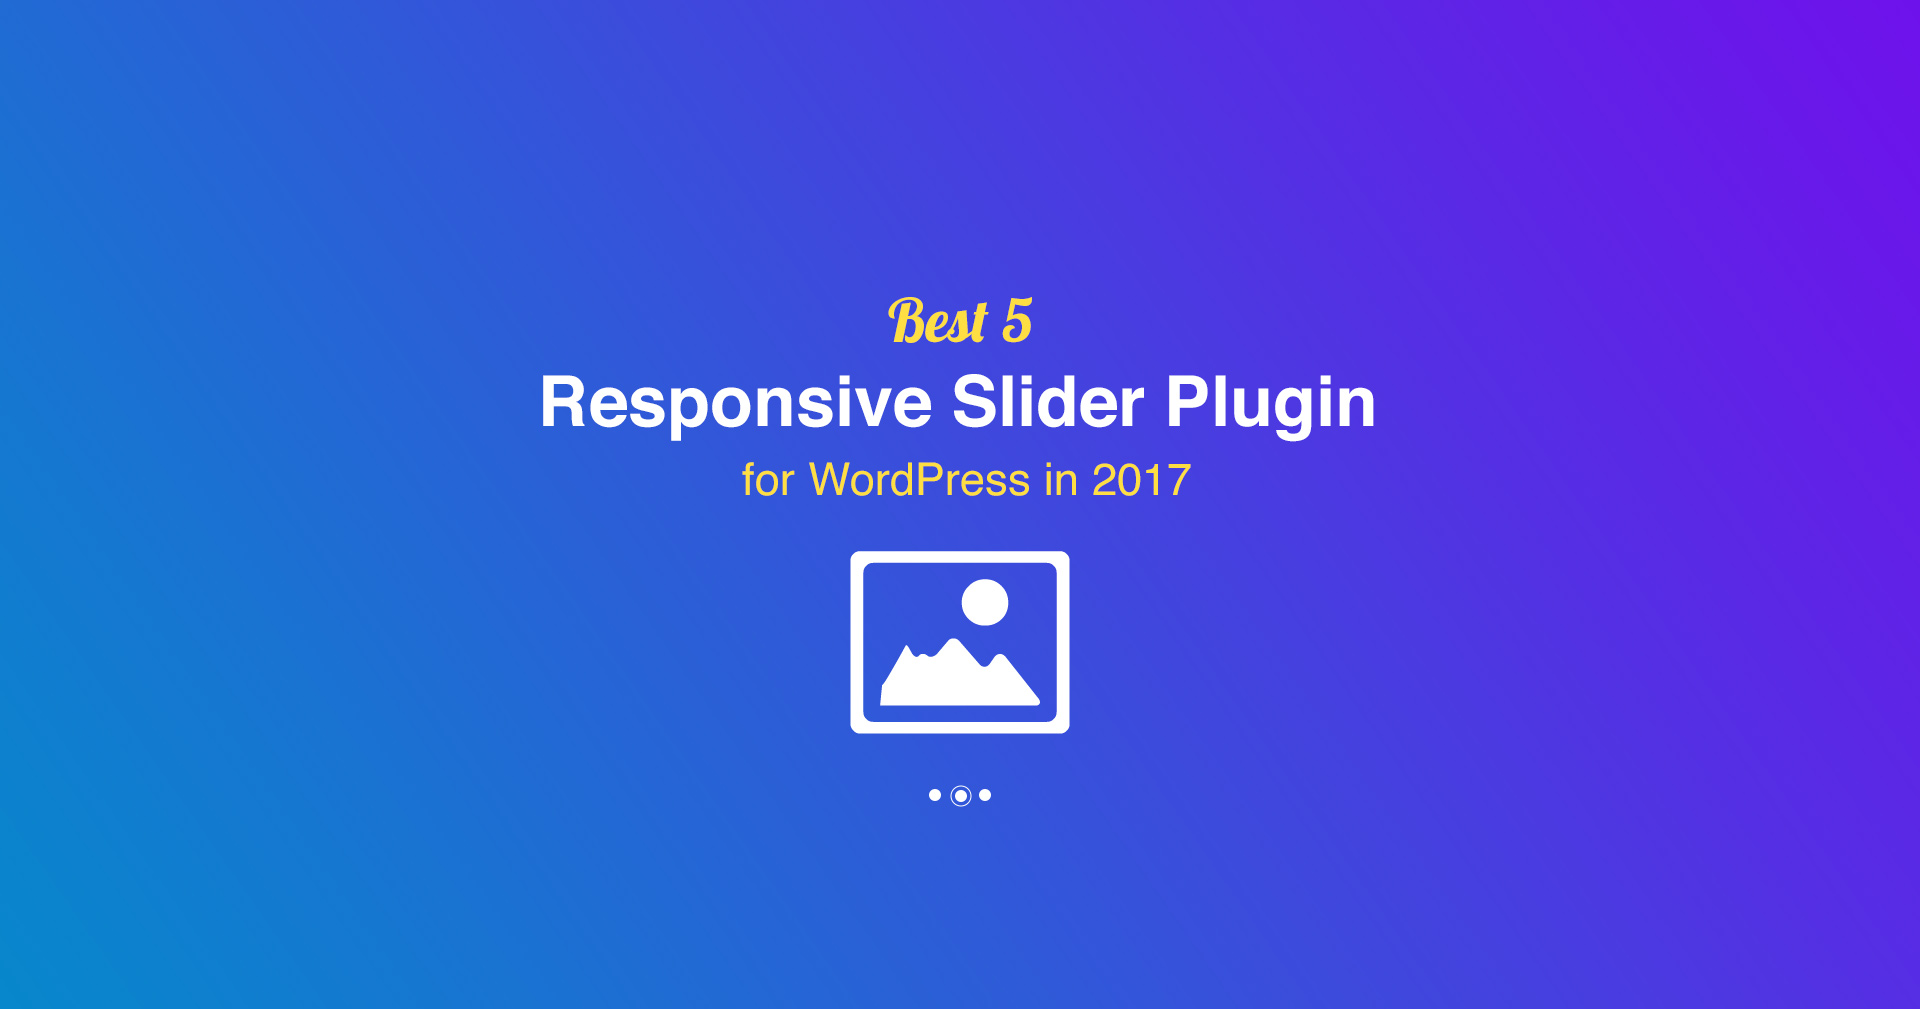 Best 5 Responsive Slider Plugin for WordPress in 2017